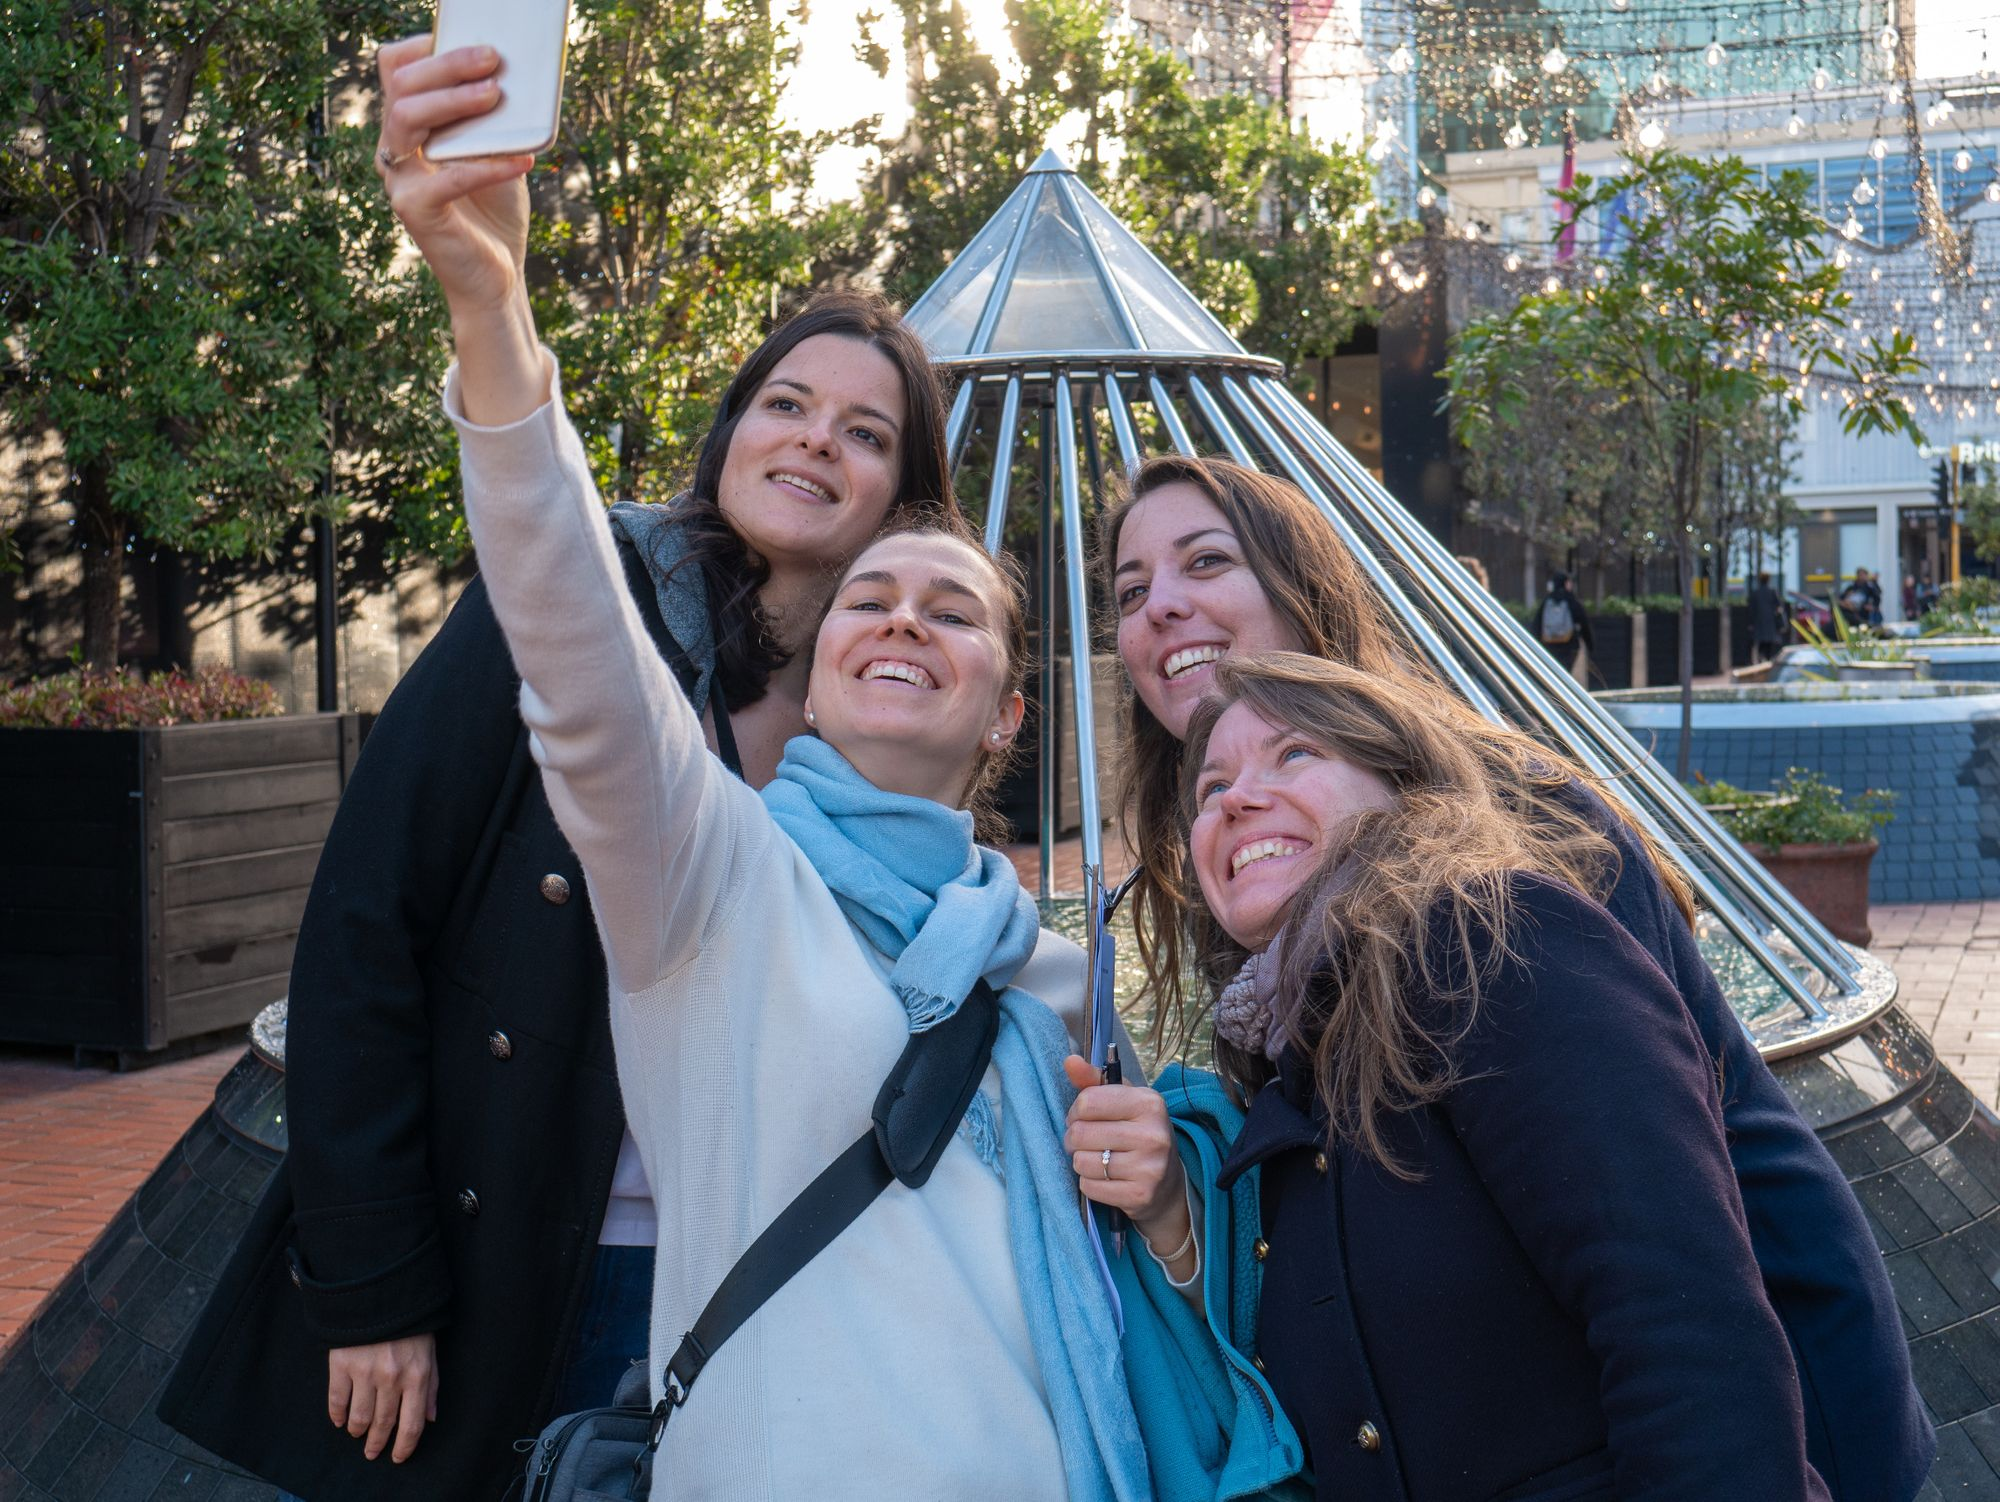 'Selfies' could be used to detect heart disease